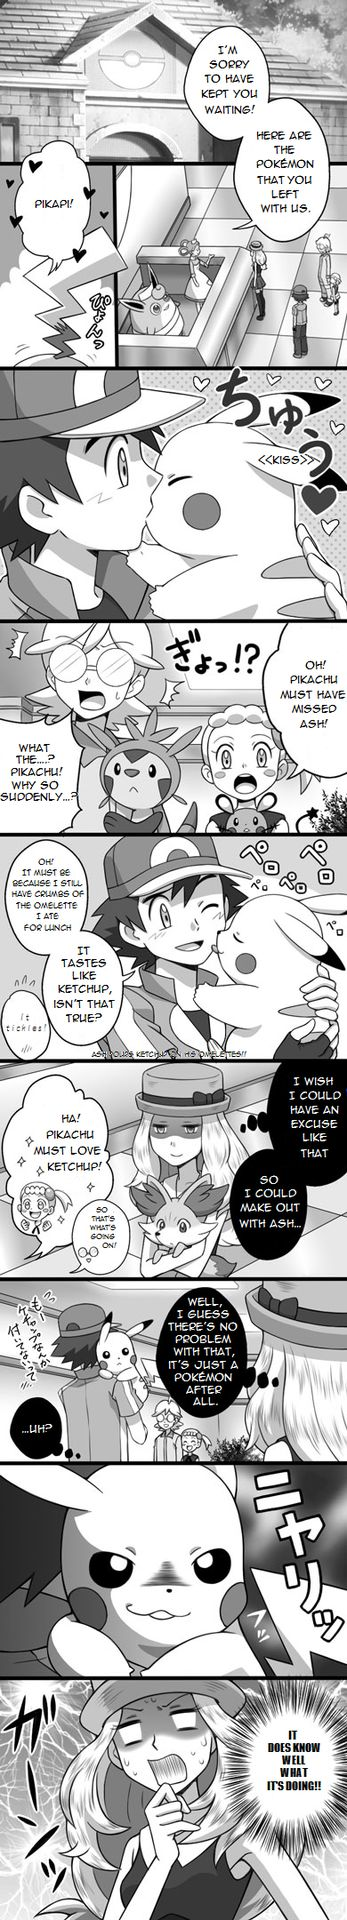 this is a little uncomfatable that pikachu is kissing ash on the lips not the cheek or a huge hug but i do enjoy the fact that he wont let her get near him >:)